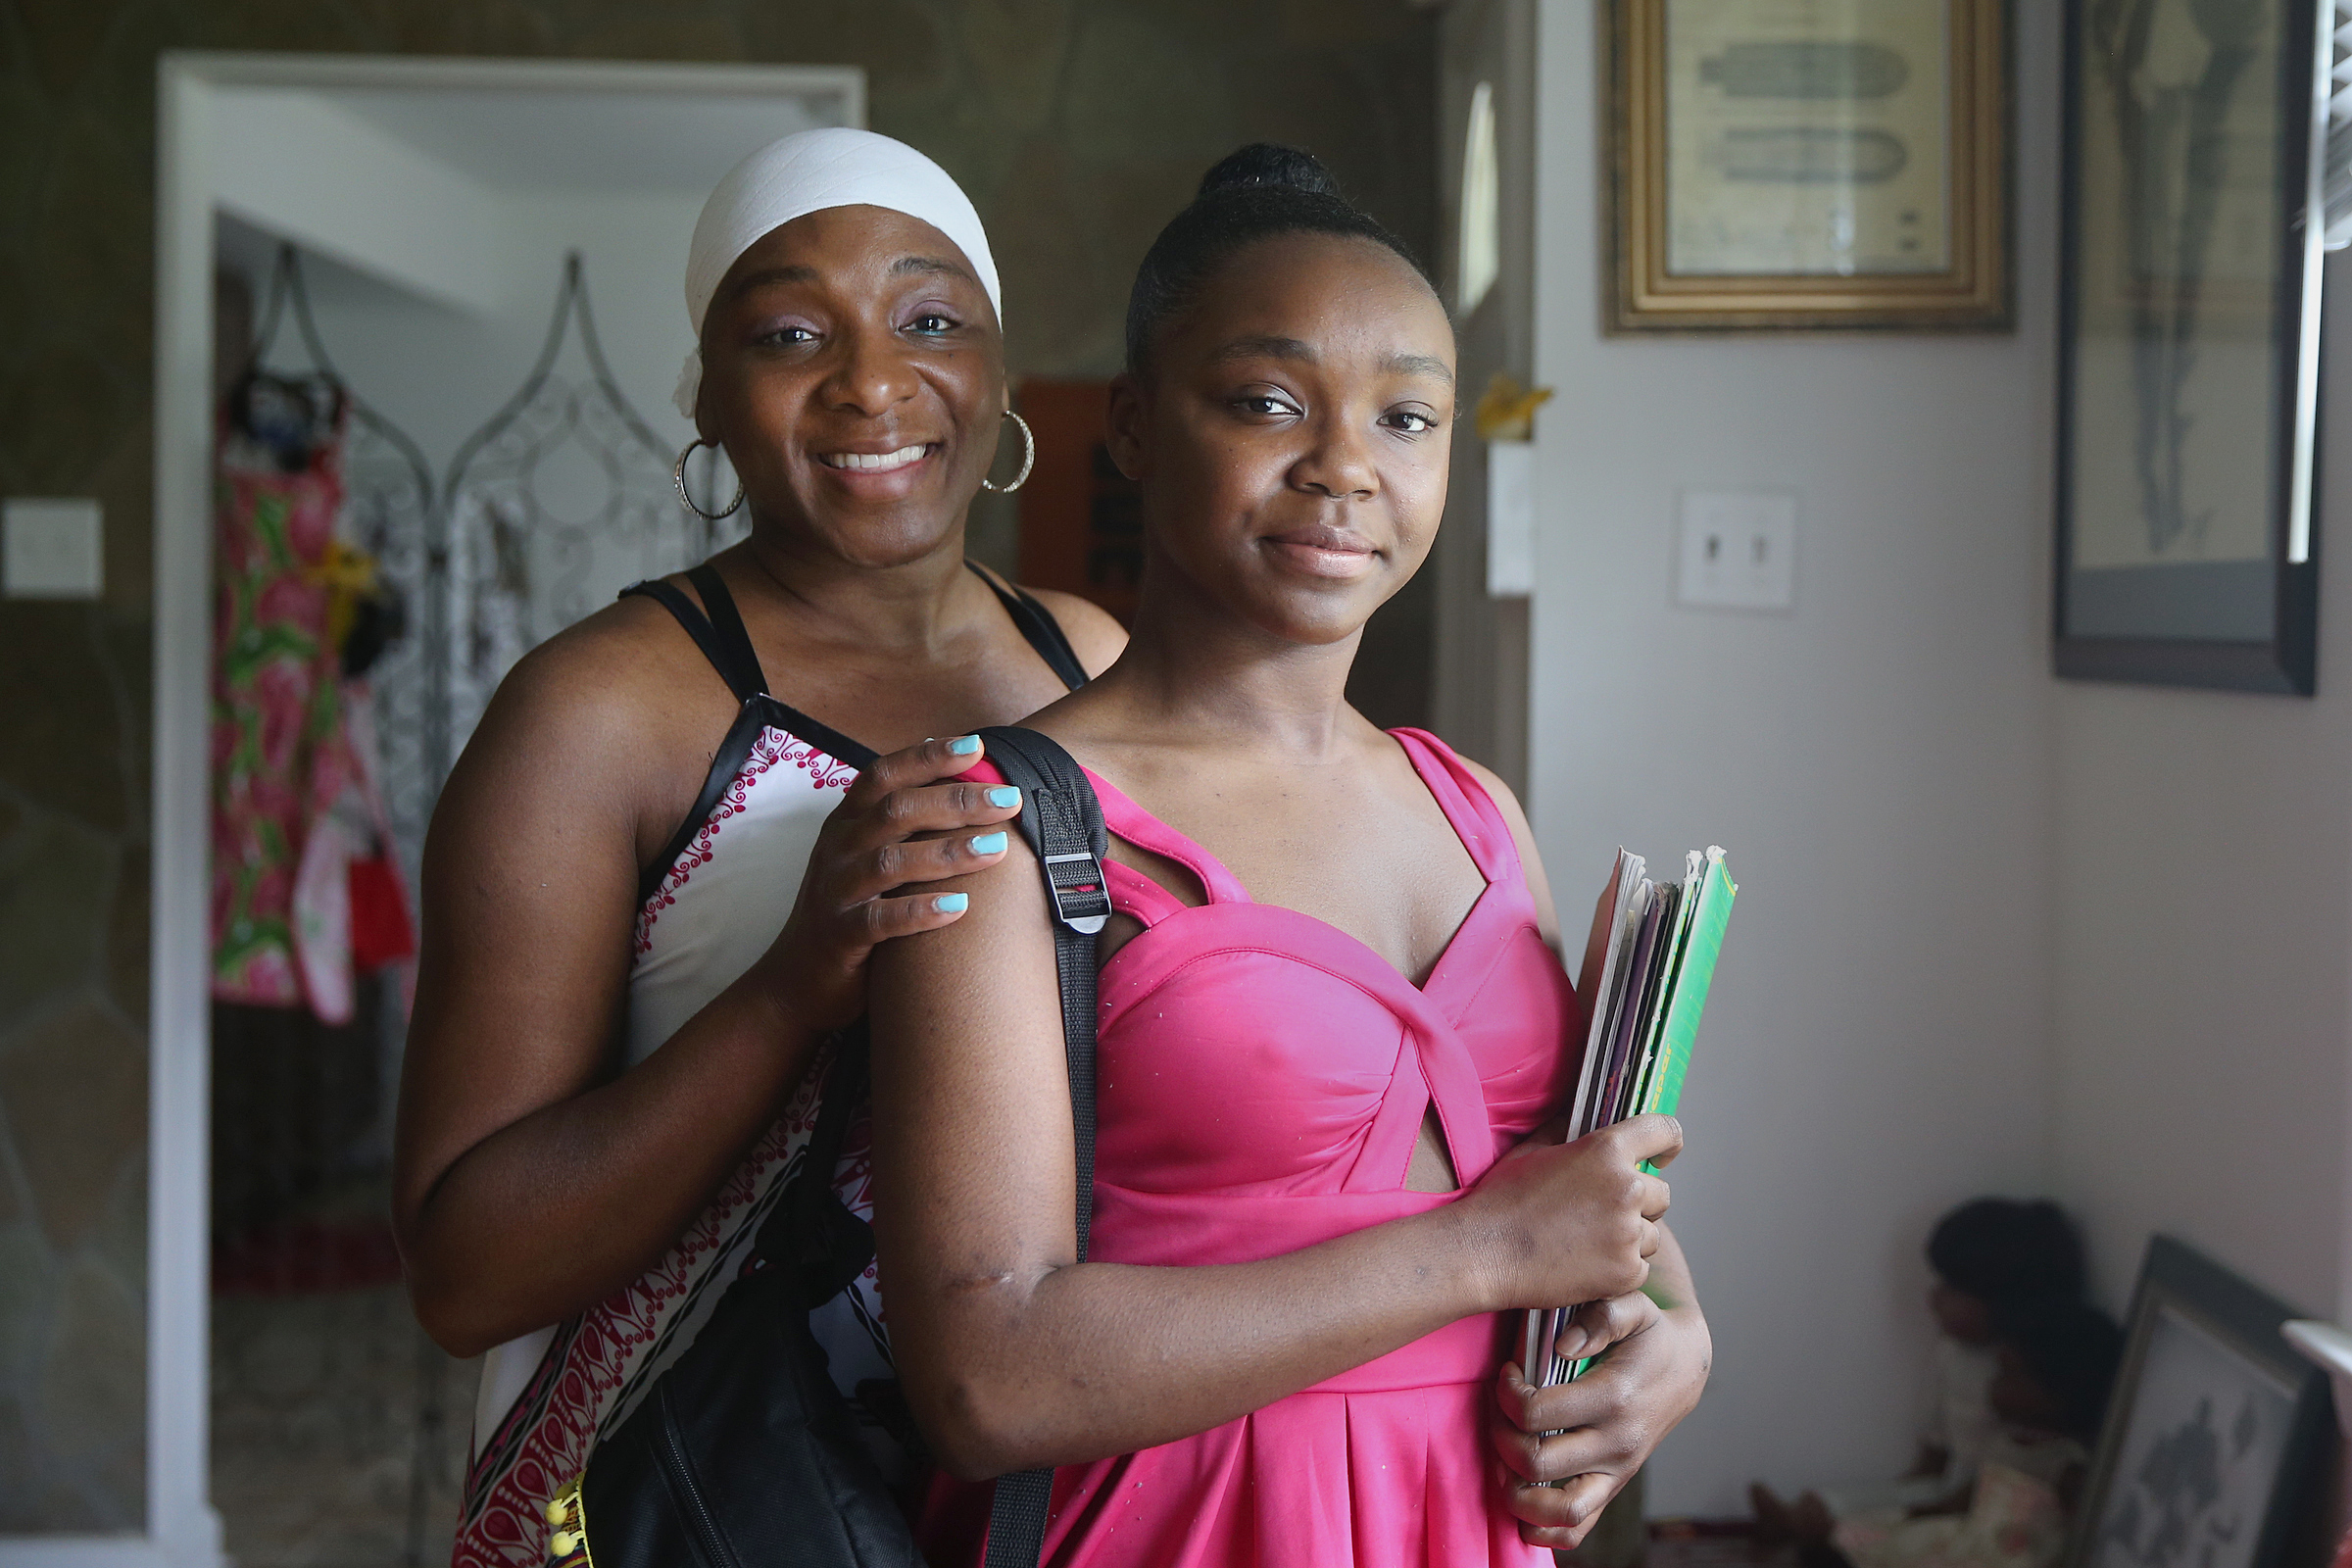 Rhapsody Taylor, right, a junior studying dance at University of the Arts, stands for a portrait with her mother, Shawnta Taylor, at their Pennsauken, N.J., home on Tuesday, May 29, 2018.